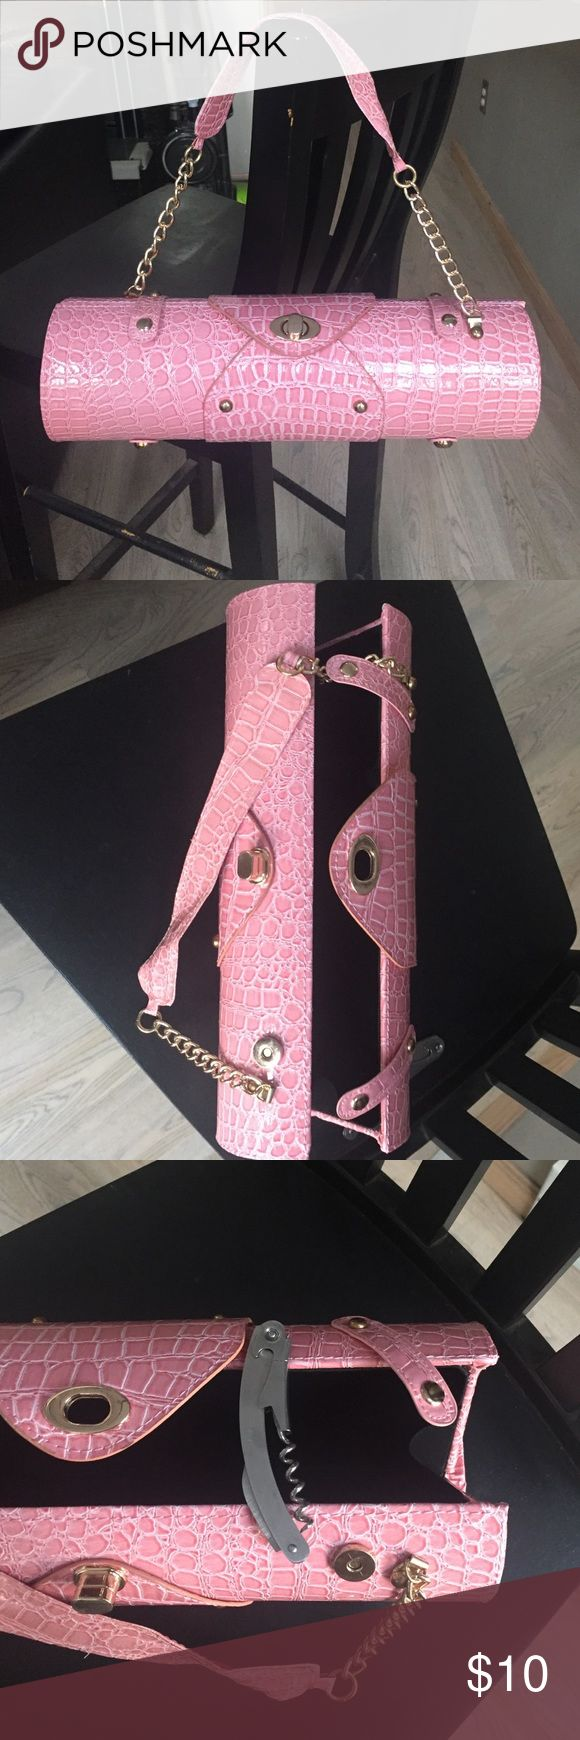 Adorable wine purse Bring your wine to a party or anywhere else in this cute little pink wine purse.  Comes with wine/ bottle opener. Bags